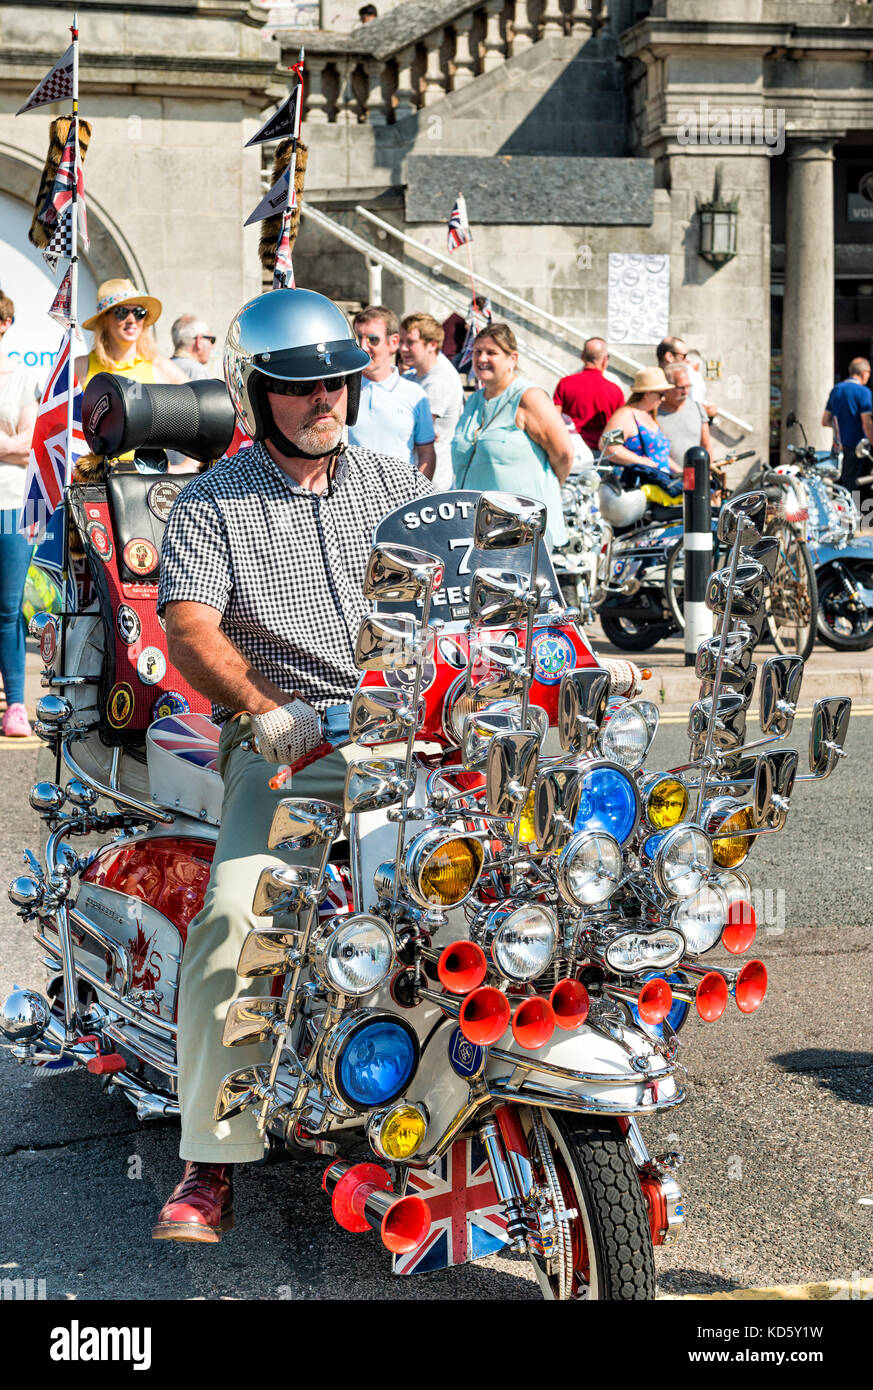 Scooterist at Brighton Mod Rally August Bank Holiday - Stock Image